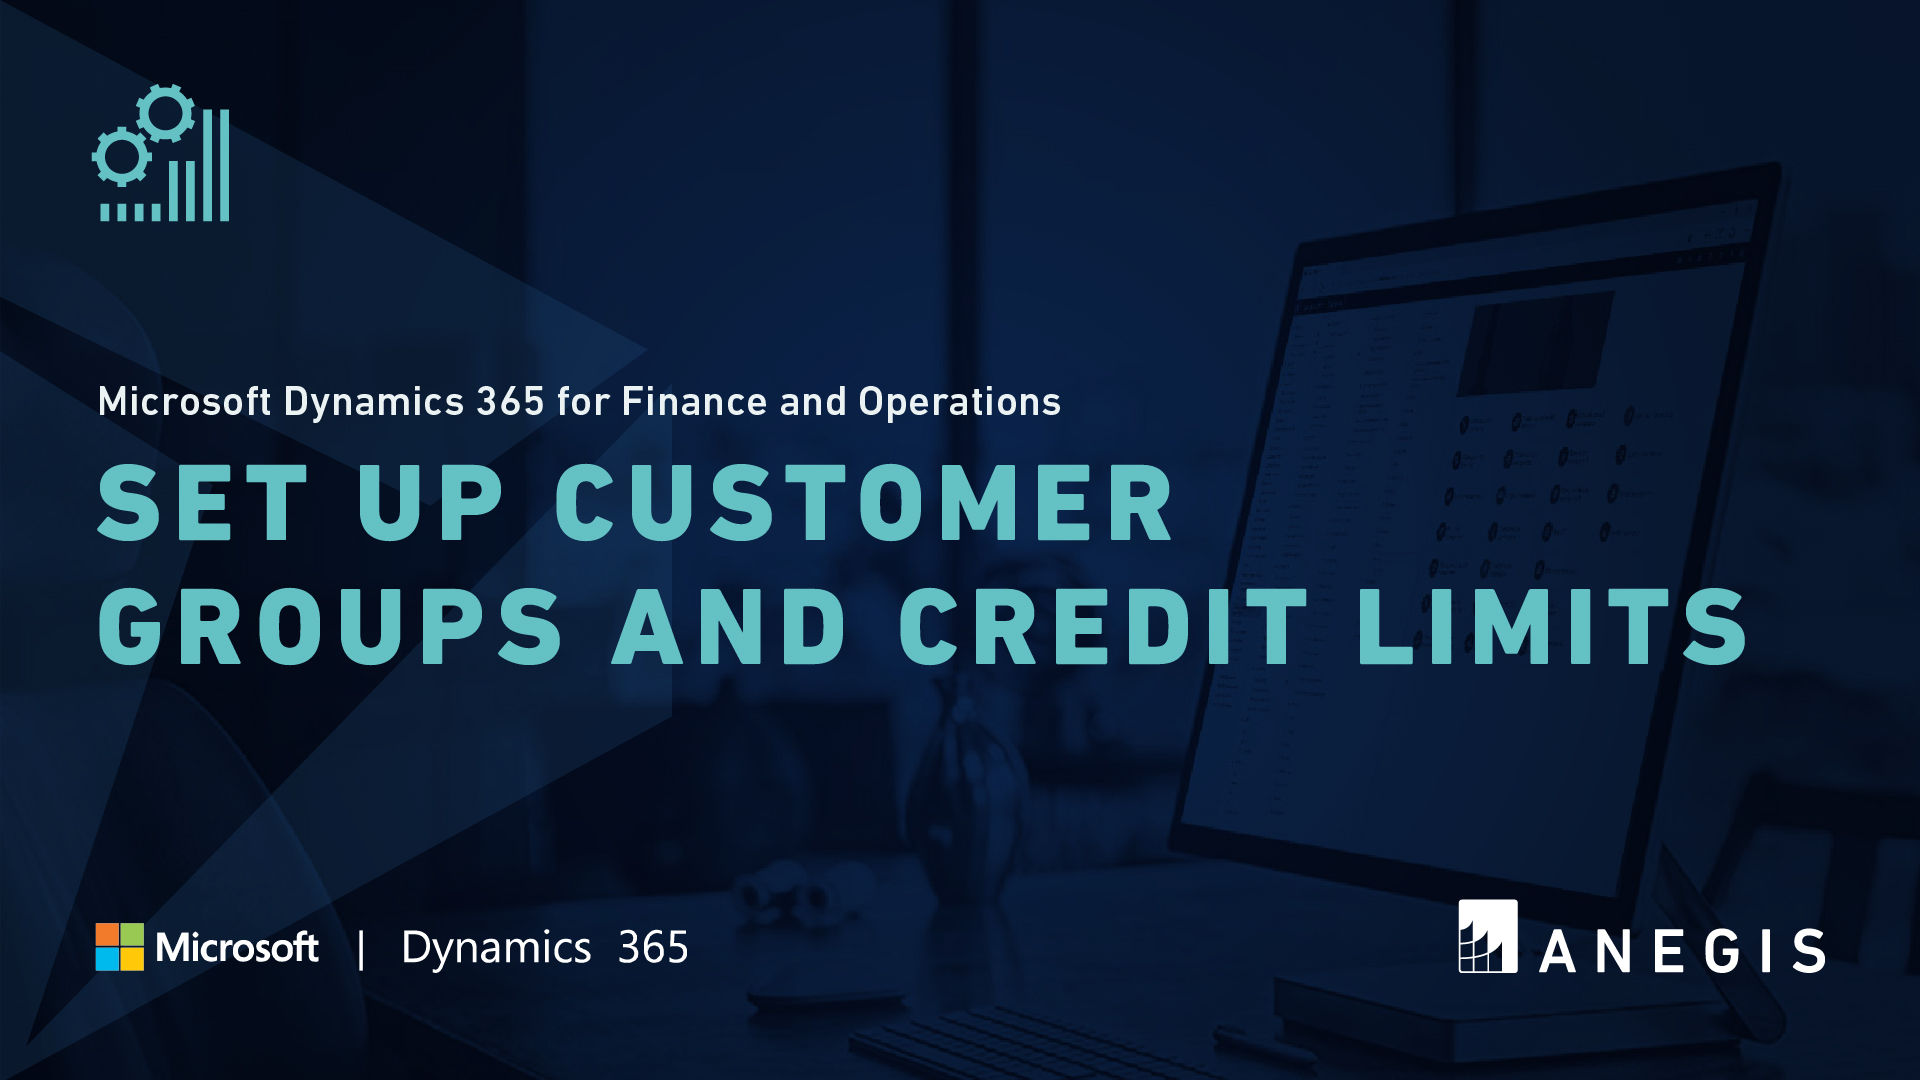 D365 F&O: Set up Customer Groups and Credit Limits